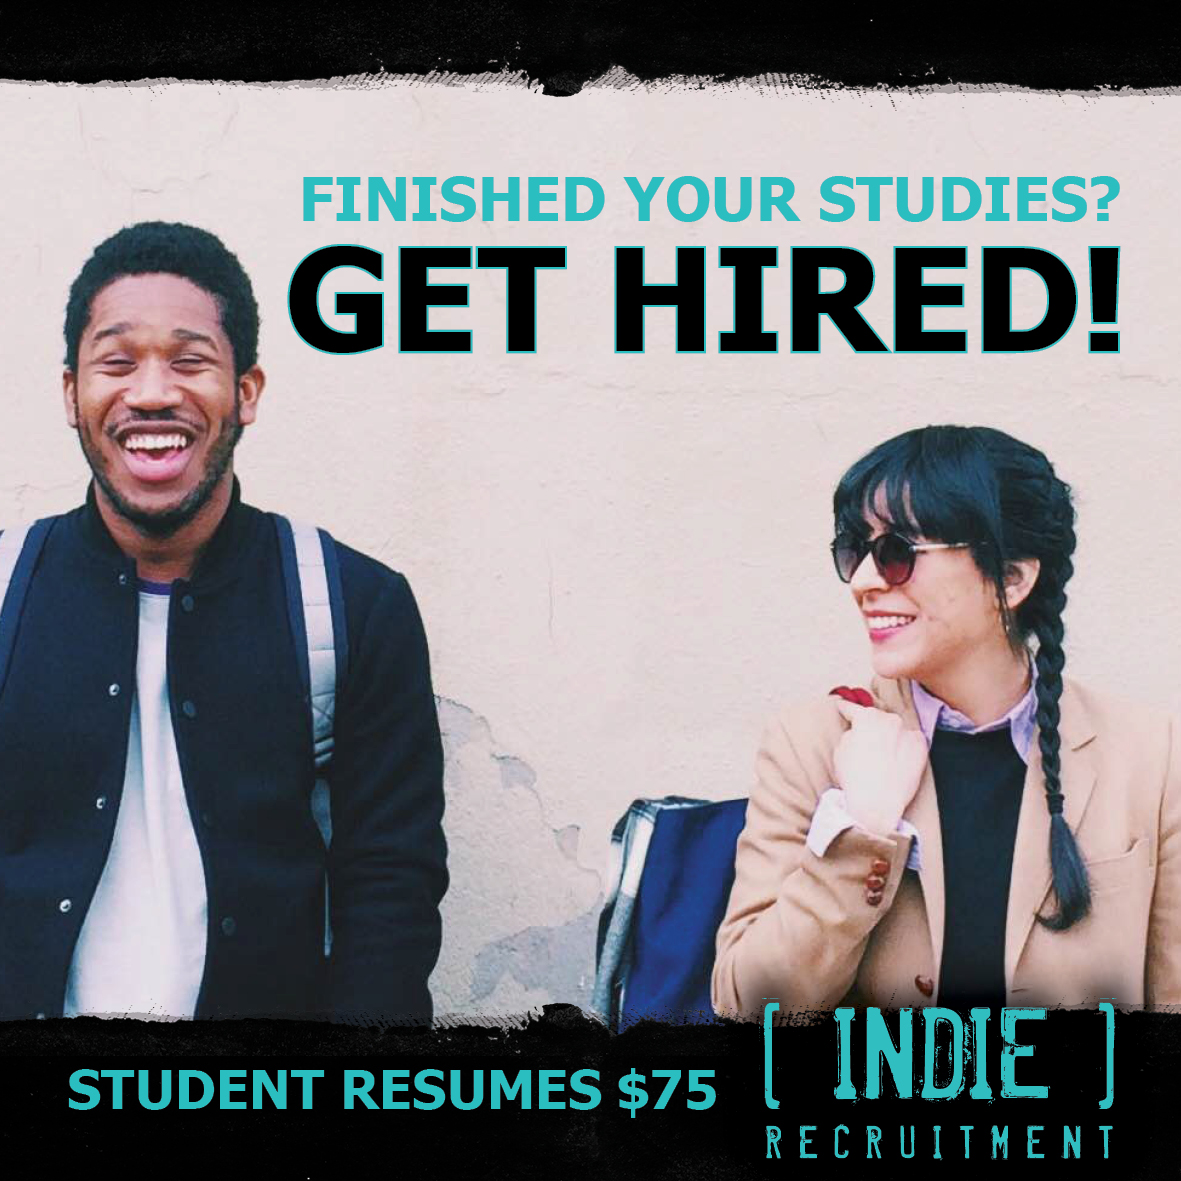 INDIE Recruitment Instagram ad